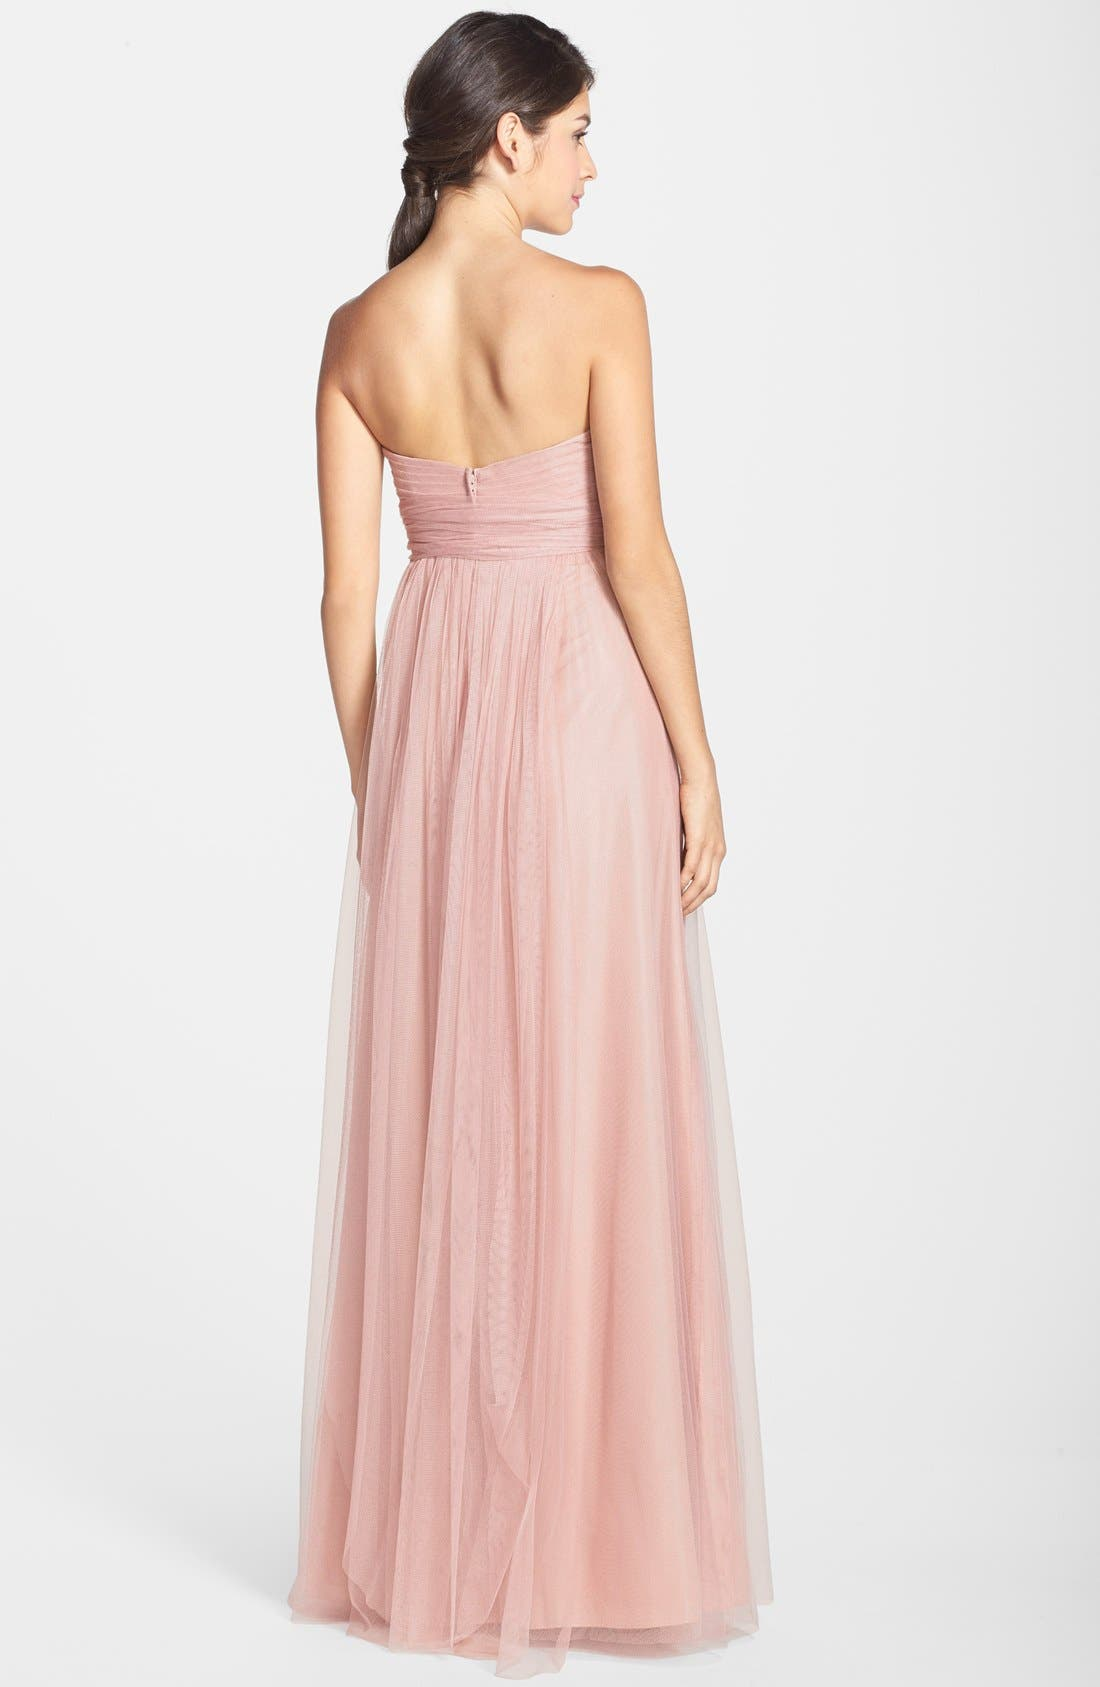 Annabelle Convertible Tulle Column Dress,                             Alternate thumbnail 104, color,